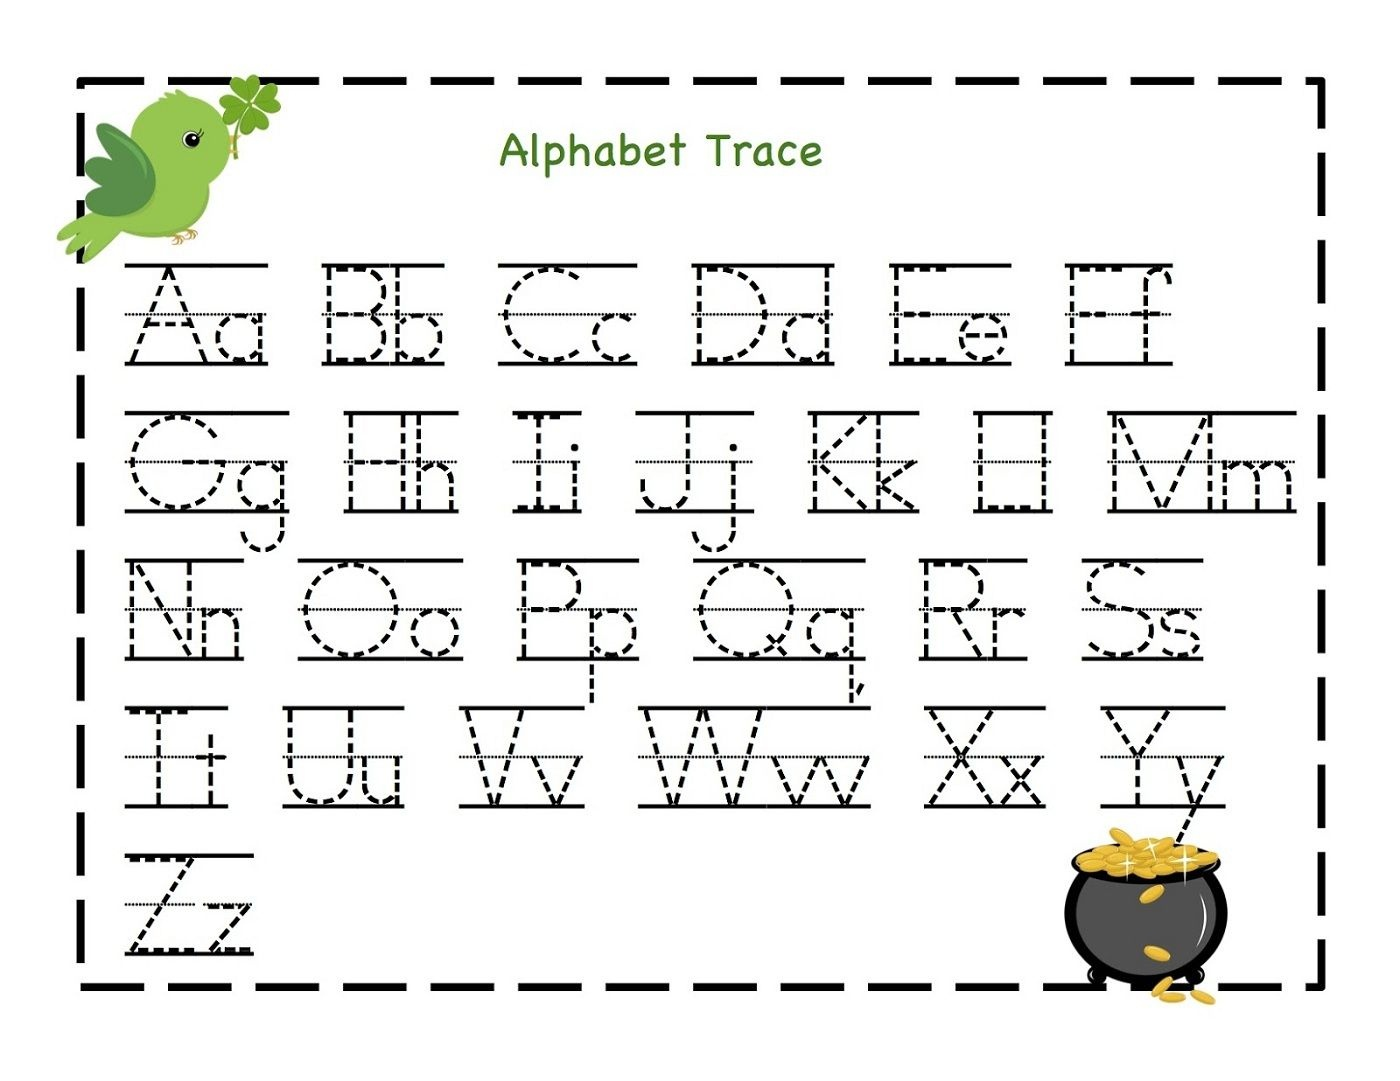 Traceable Letter Worksheets To Print | Schoolwork For Taj And Bre - Free Printable Alphabet Worksheets For Kindergarten